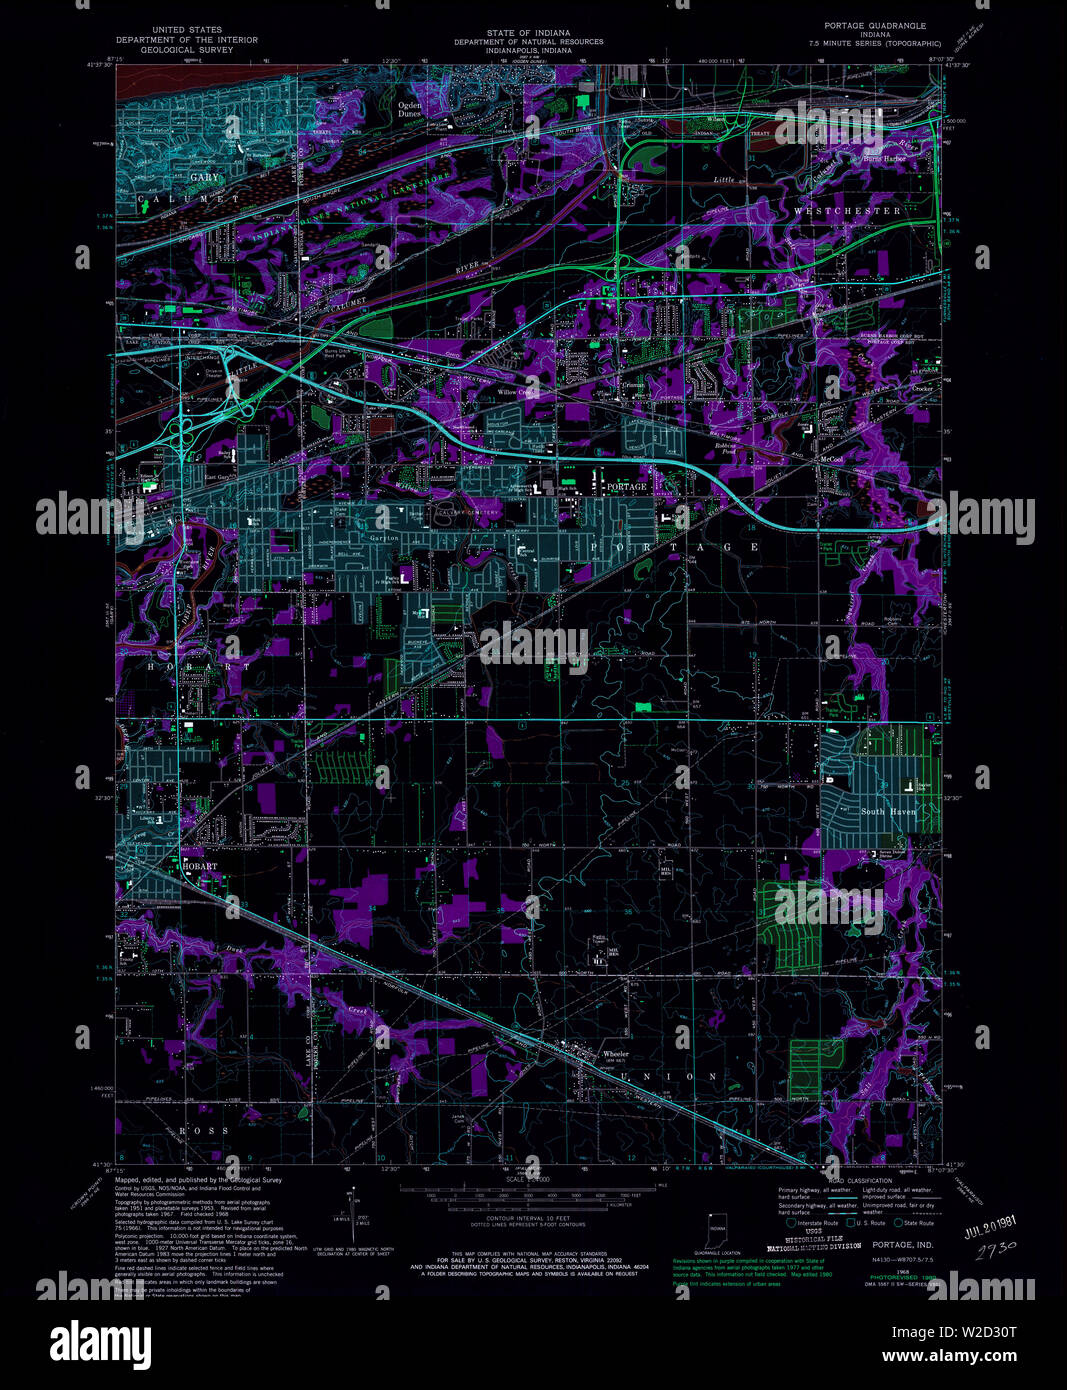 USGS TOPO Map Indiana IN Portage 160891 1968 24000 Inverted Restoration Stock Photo